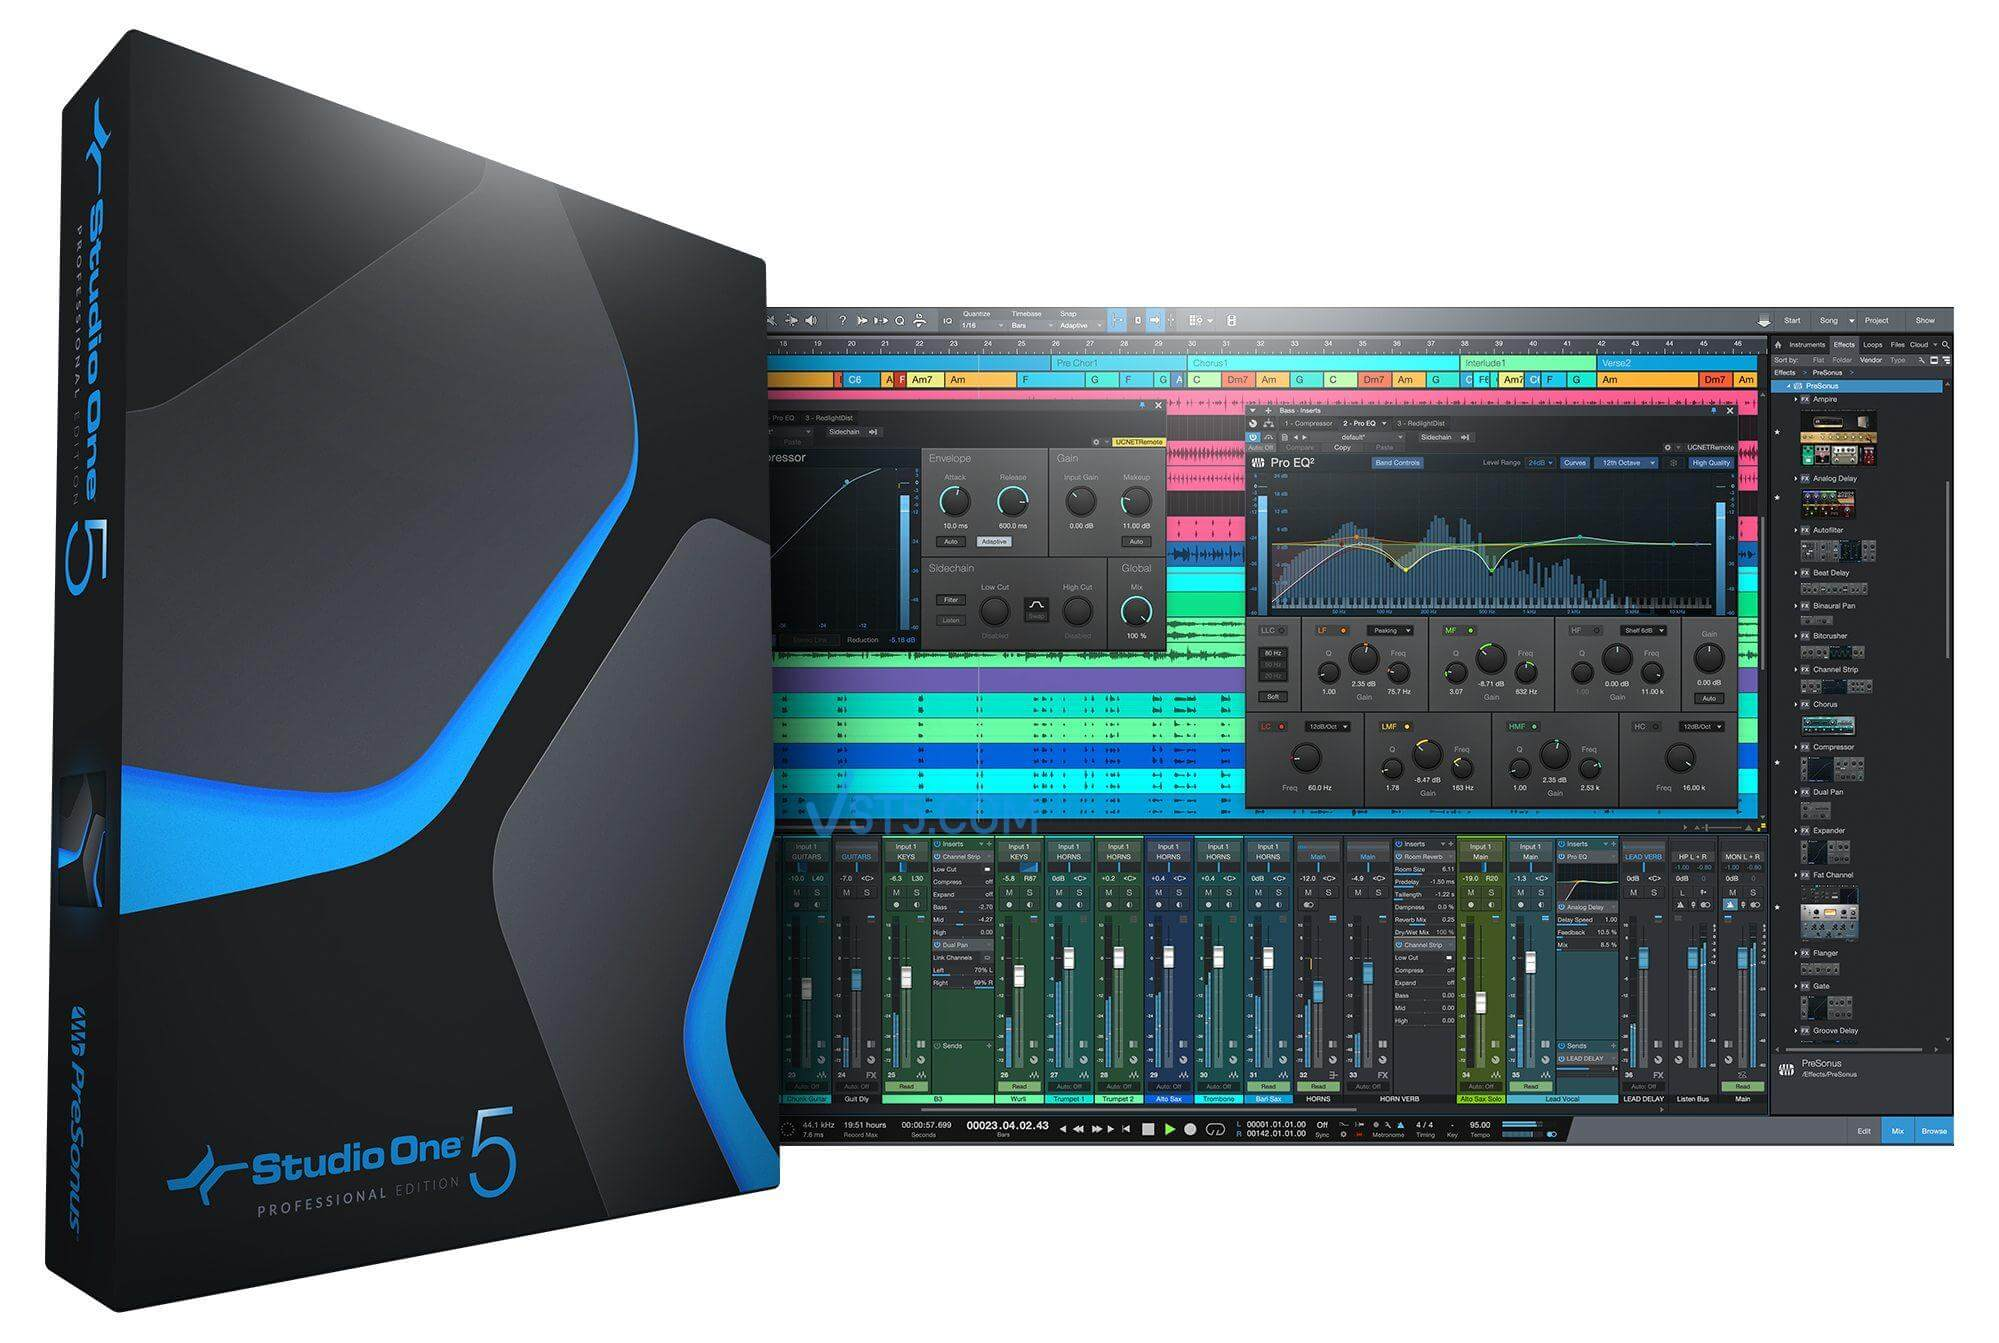 PreSonus Studio One 5 Professional v5.0.1 Incl Patched and Keygen-R2R插图